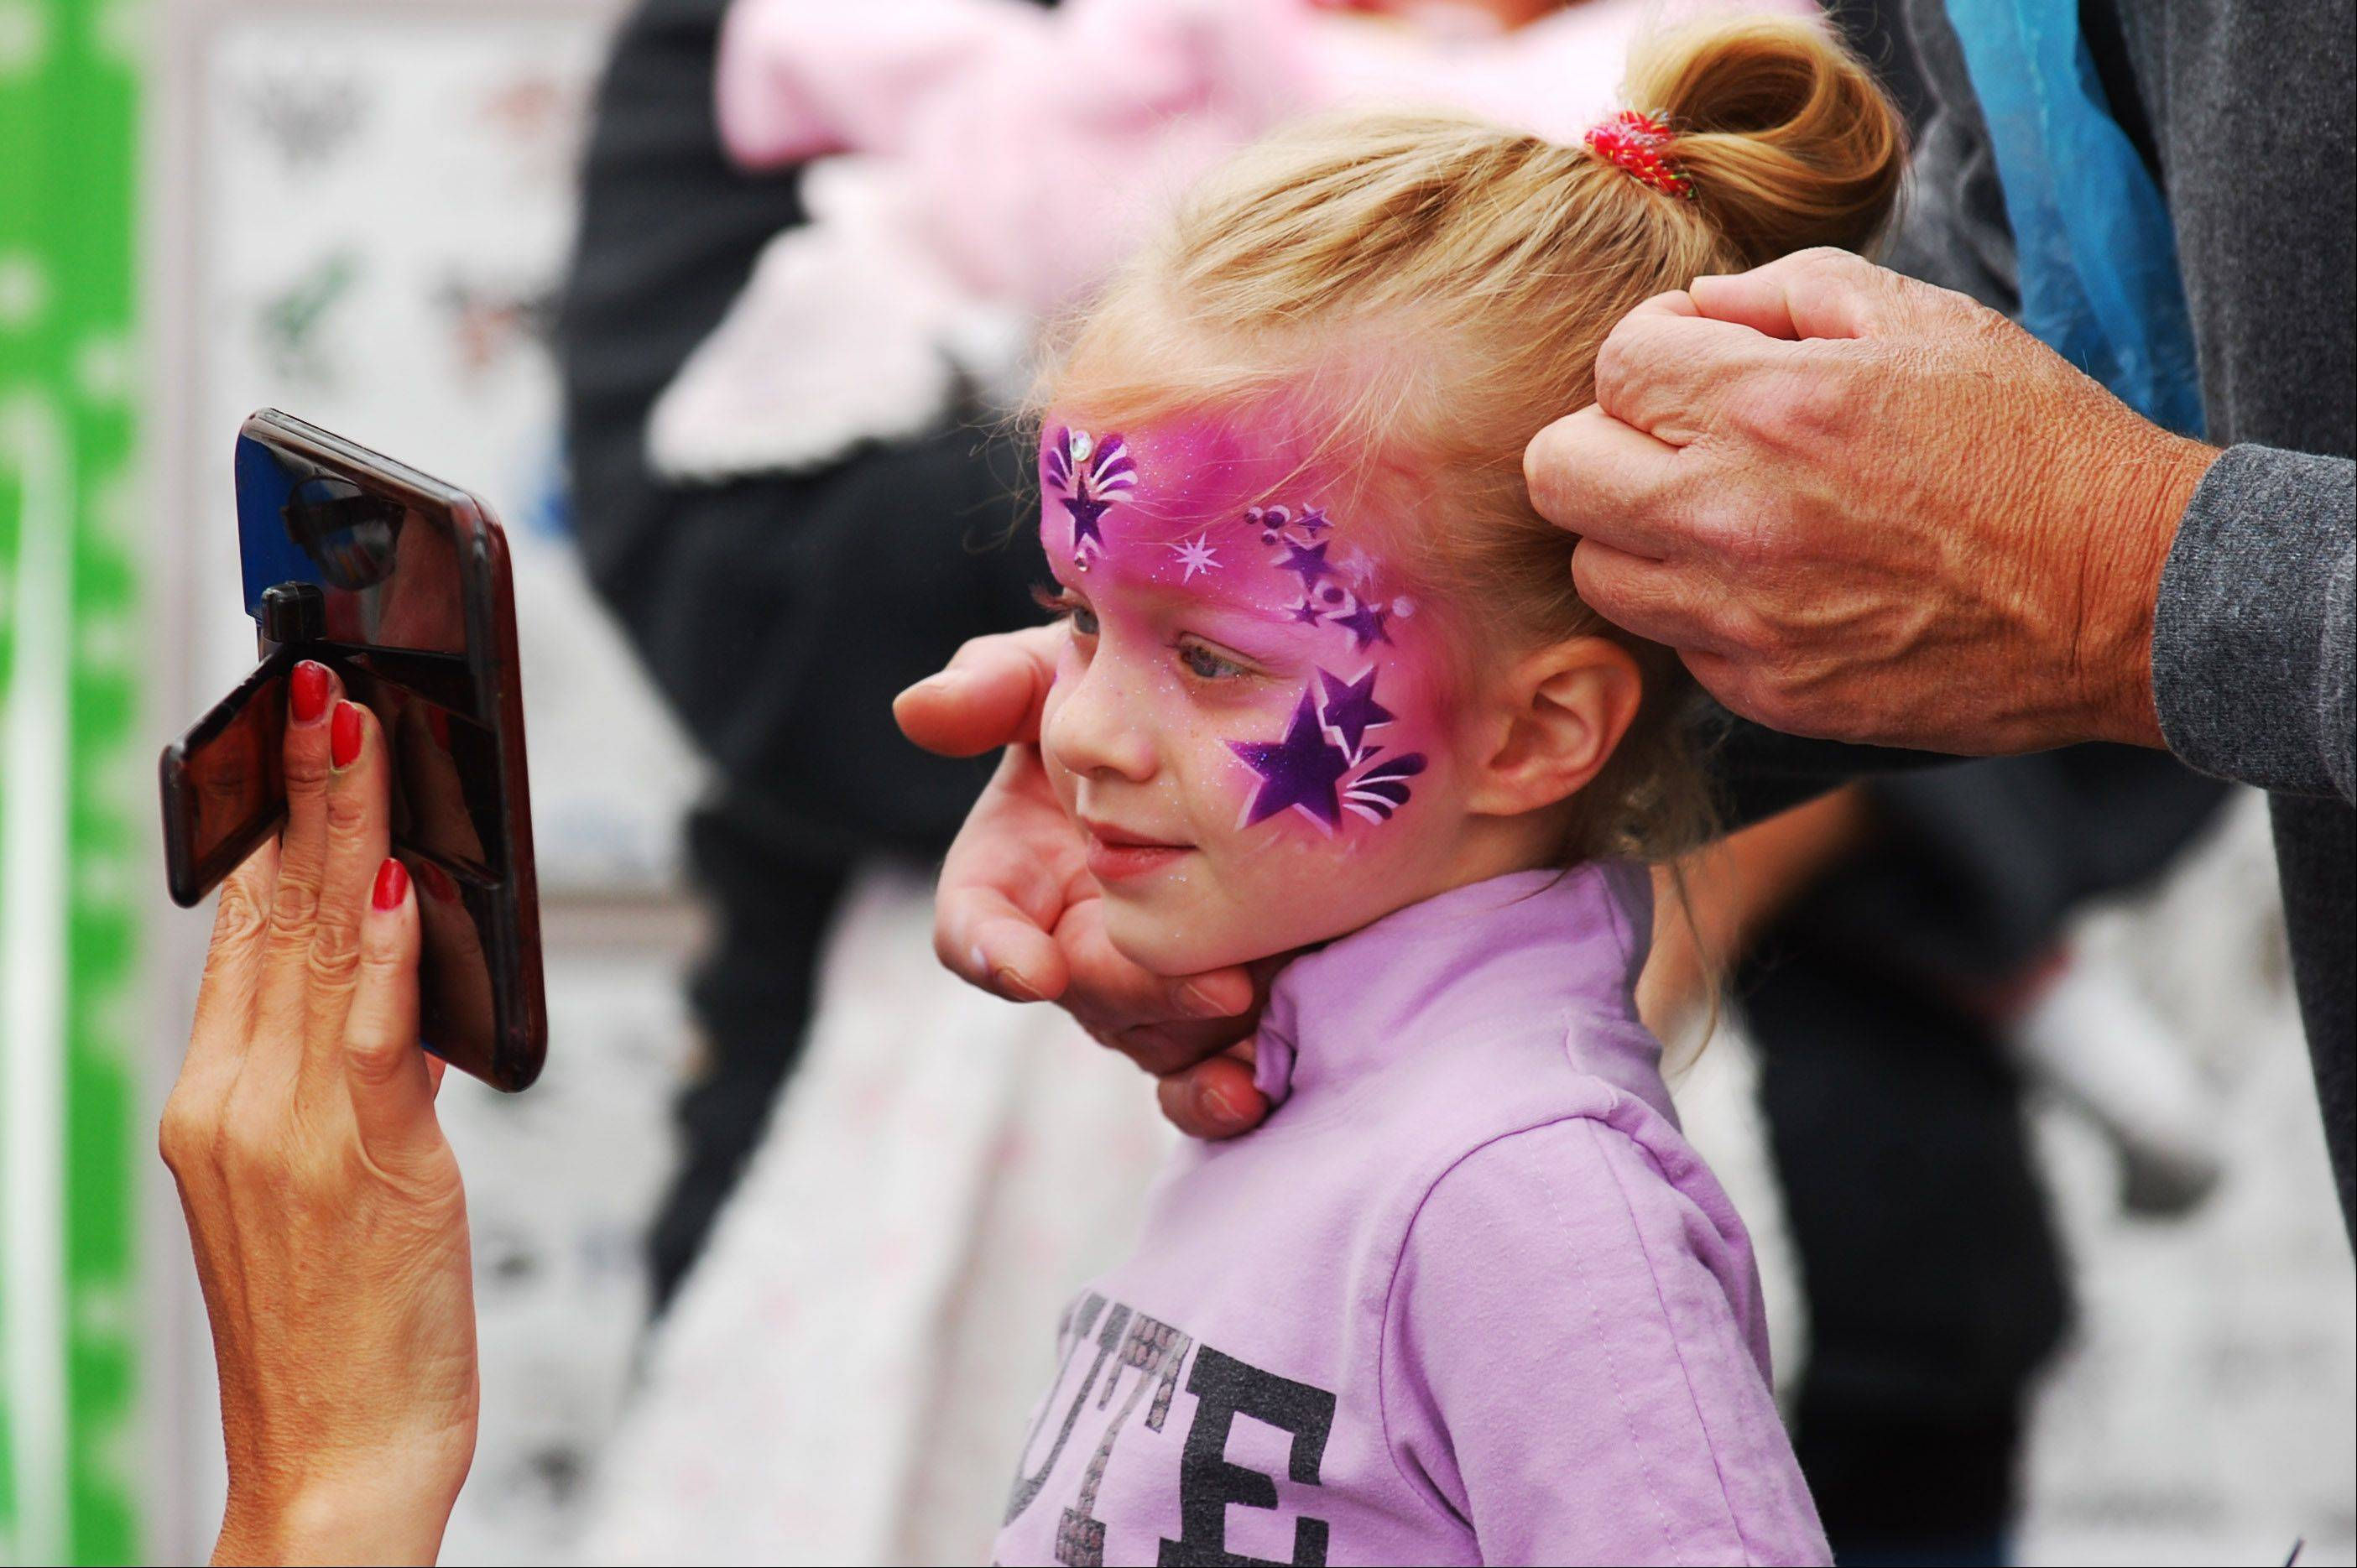 Peyton Jones, 4, of Big Rock gets a look at her start themed face paint at the Sugar Grove annual Corn Boil on Saturday, July 27. Grin and Wear It Face Painting was one of several activities at the Corn Boil.